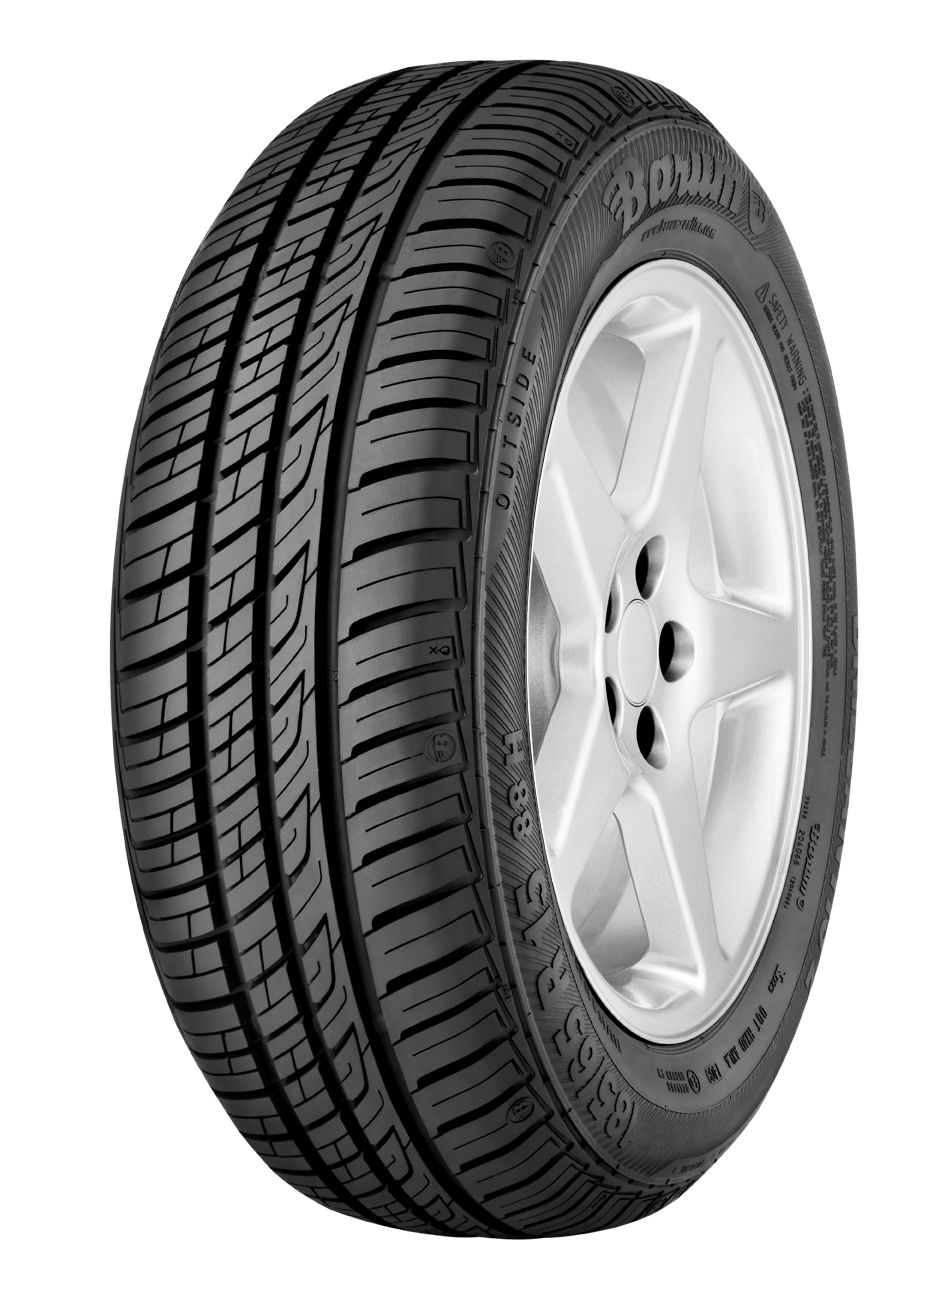 155/80 R13 Barum Brillantis 2 79 T